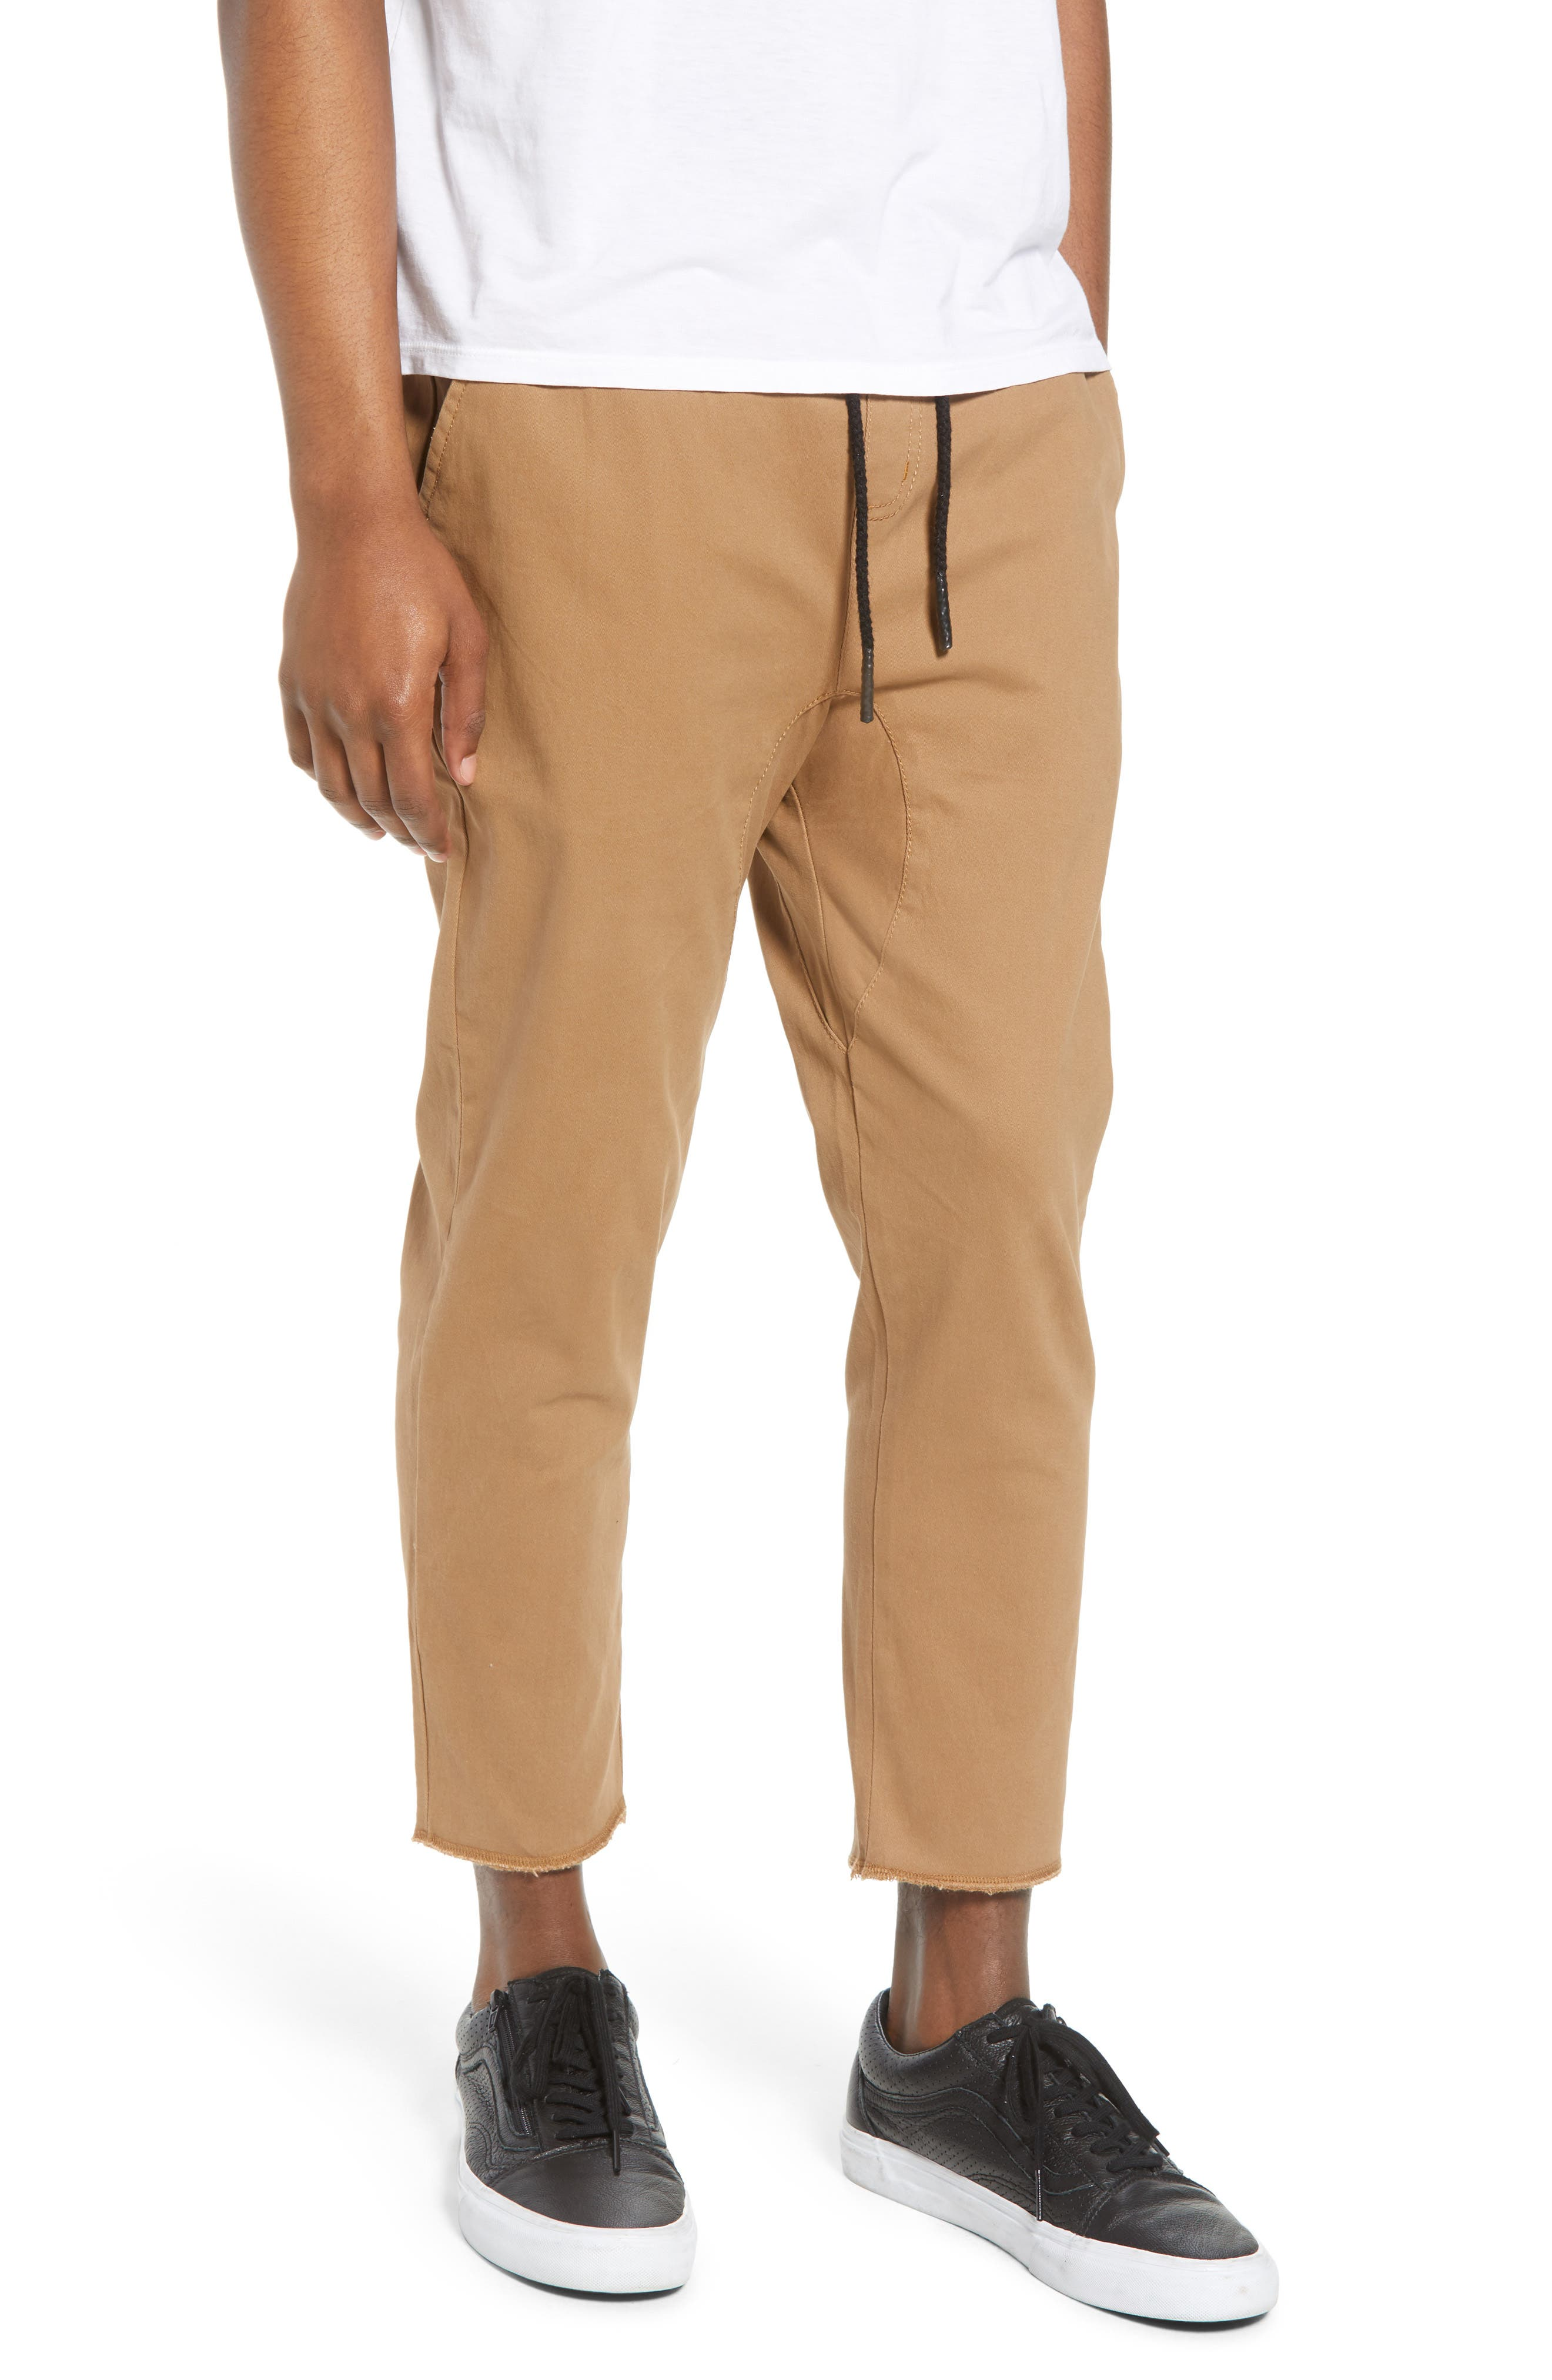 Vacation Slim Fit Crop Pants,                             Main thumbnail 1, color,                             Khaki